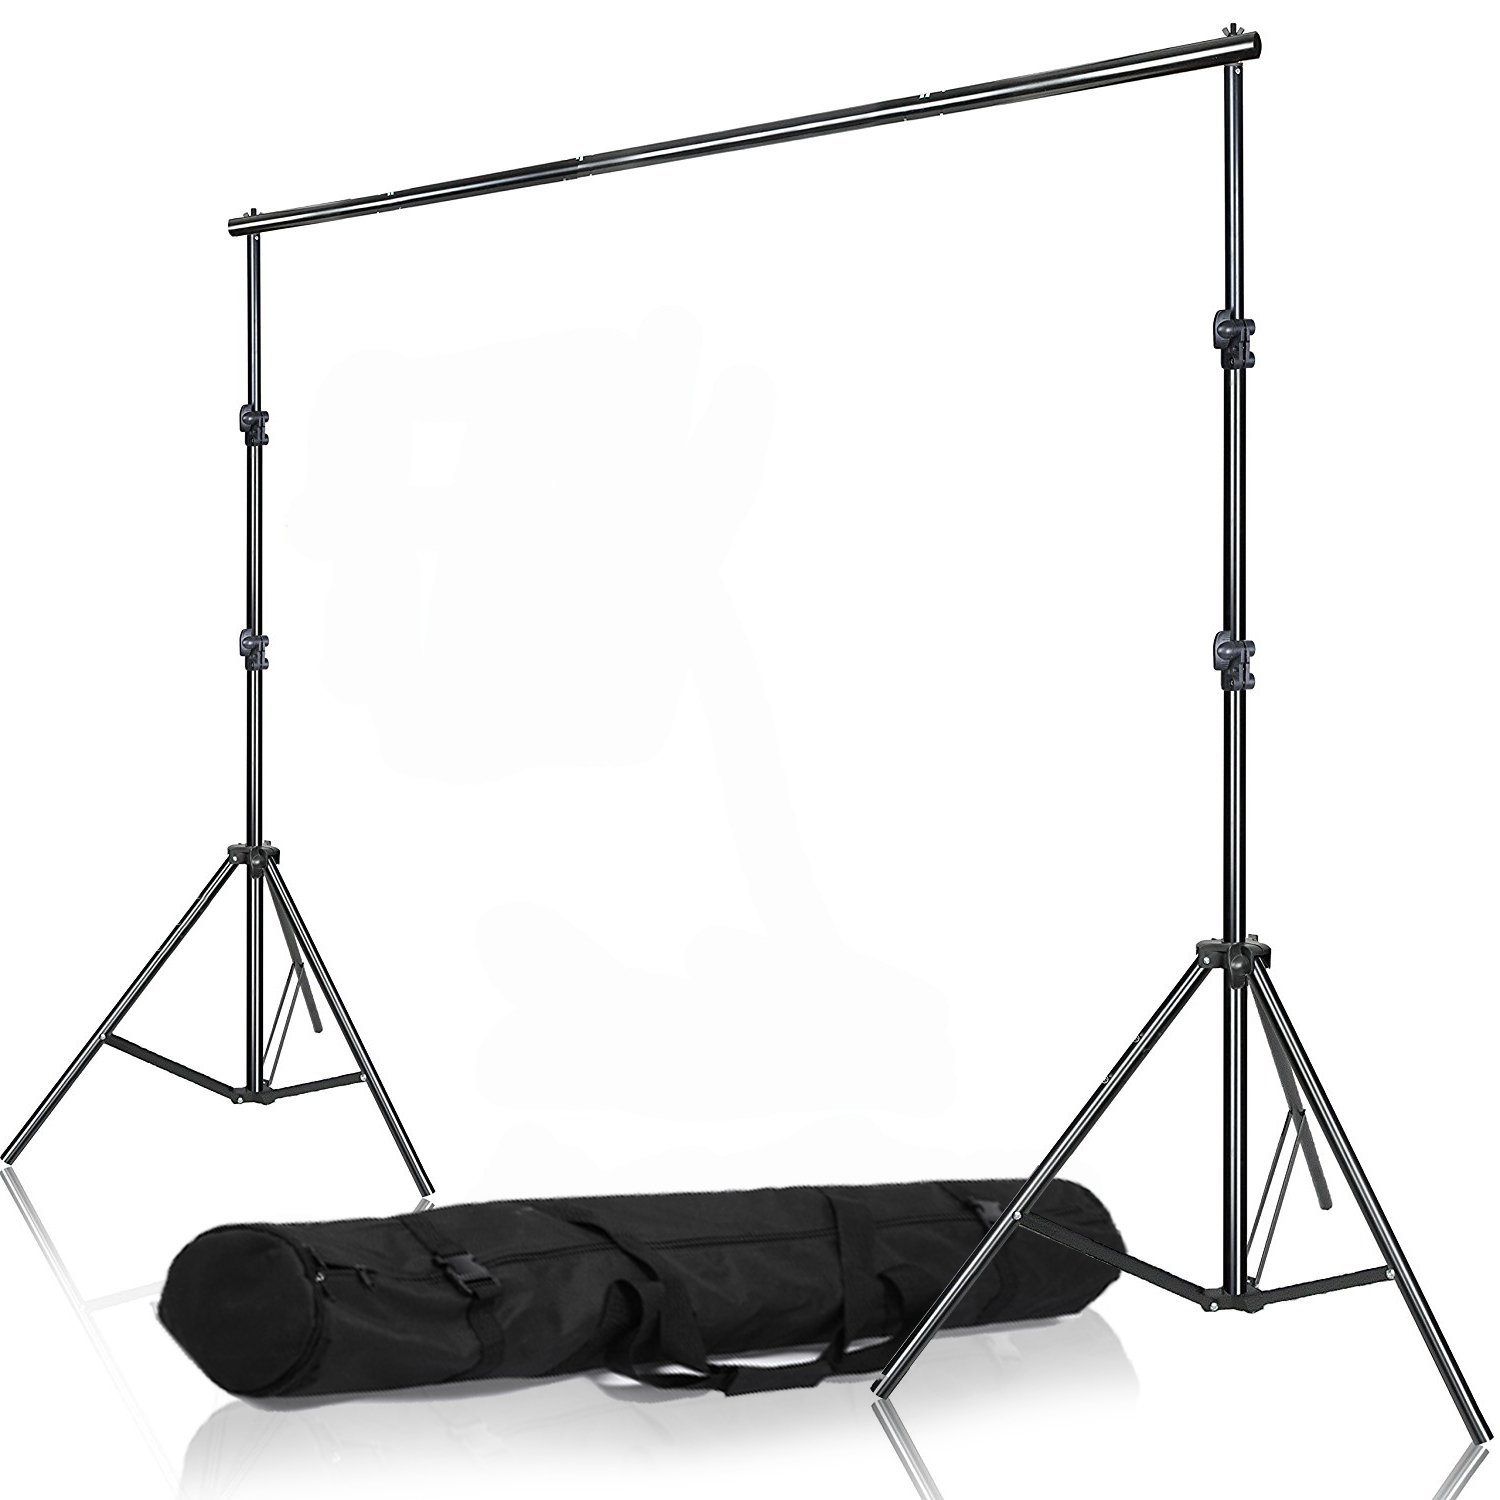 Selens Muslin Seamless Paper Background Backdrop Support System Kit Adjustable Stand & Crossbar with Carrying Bag for Photo and Video Studio, 6.56ft x 6.56ft / 2M x2M